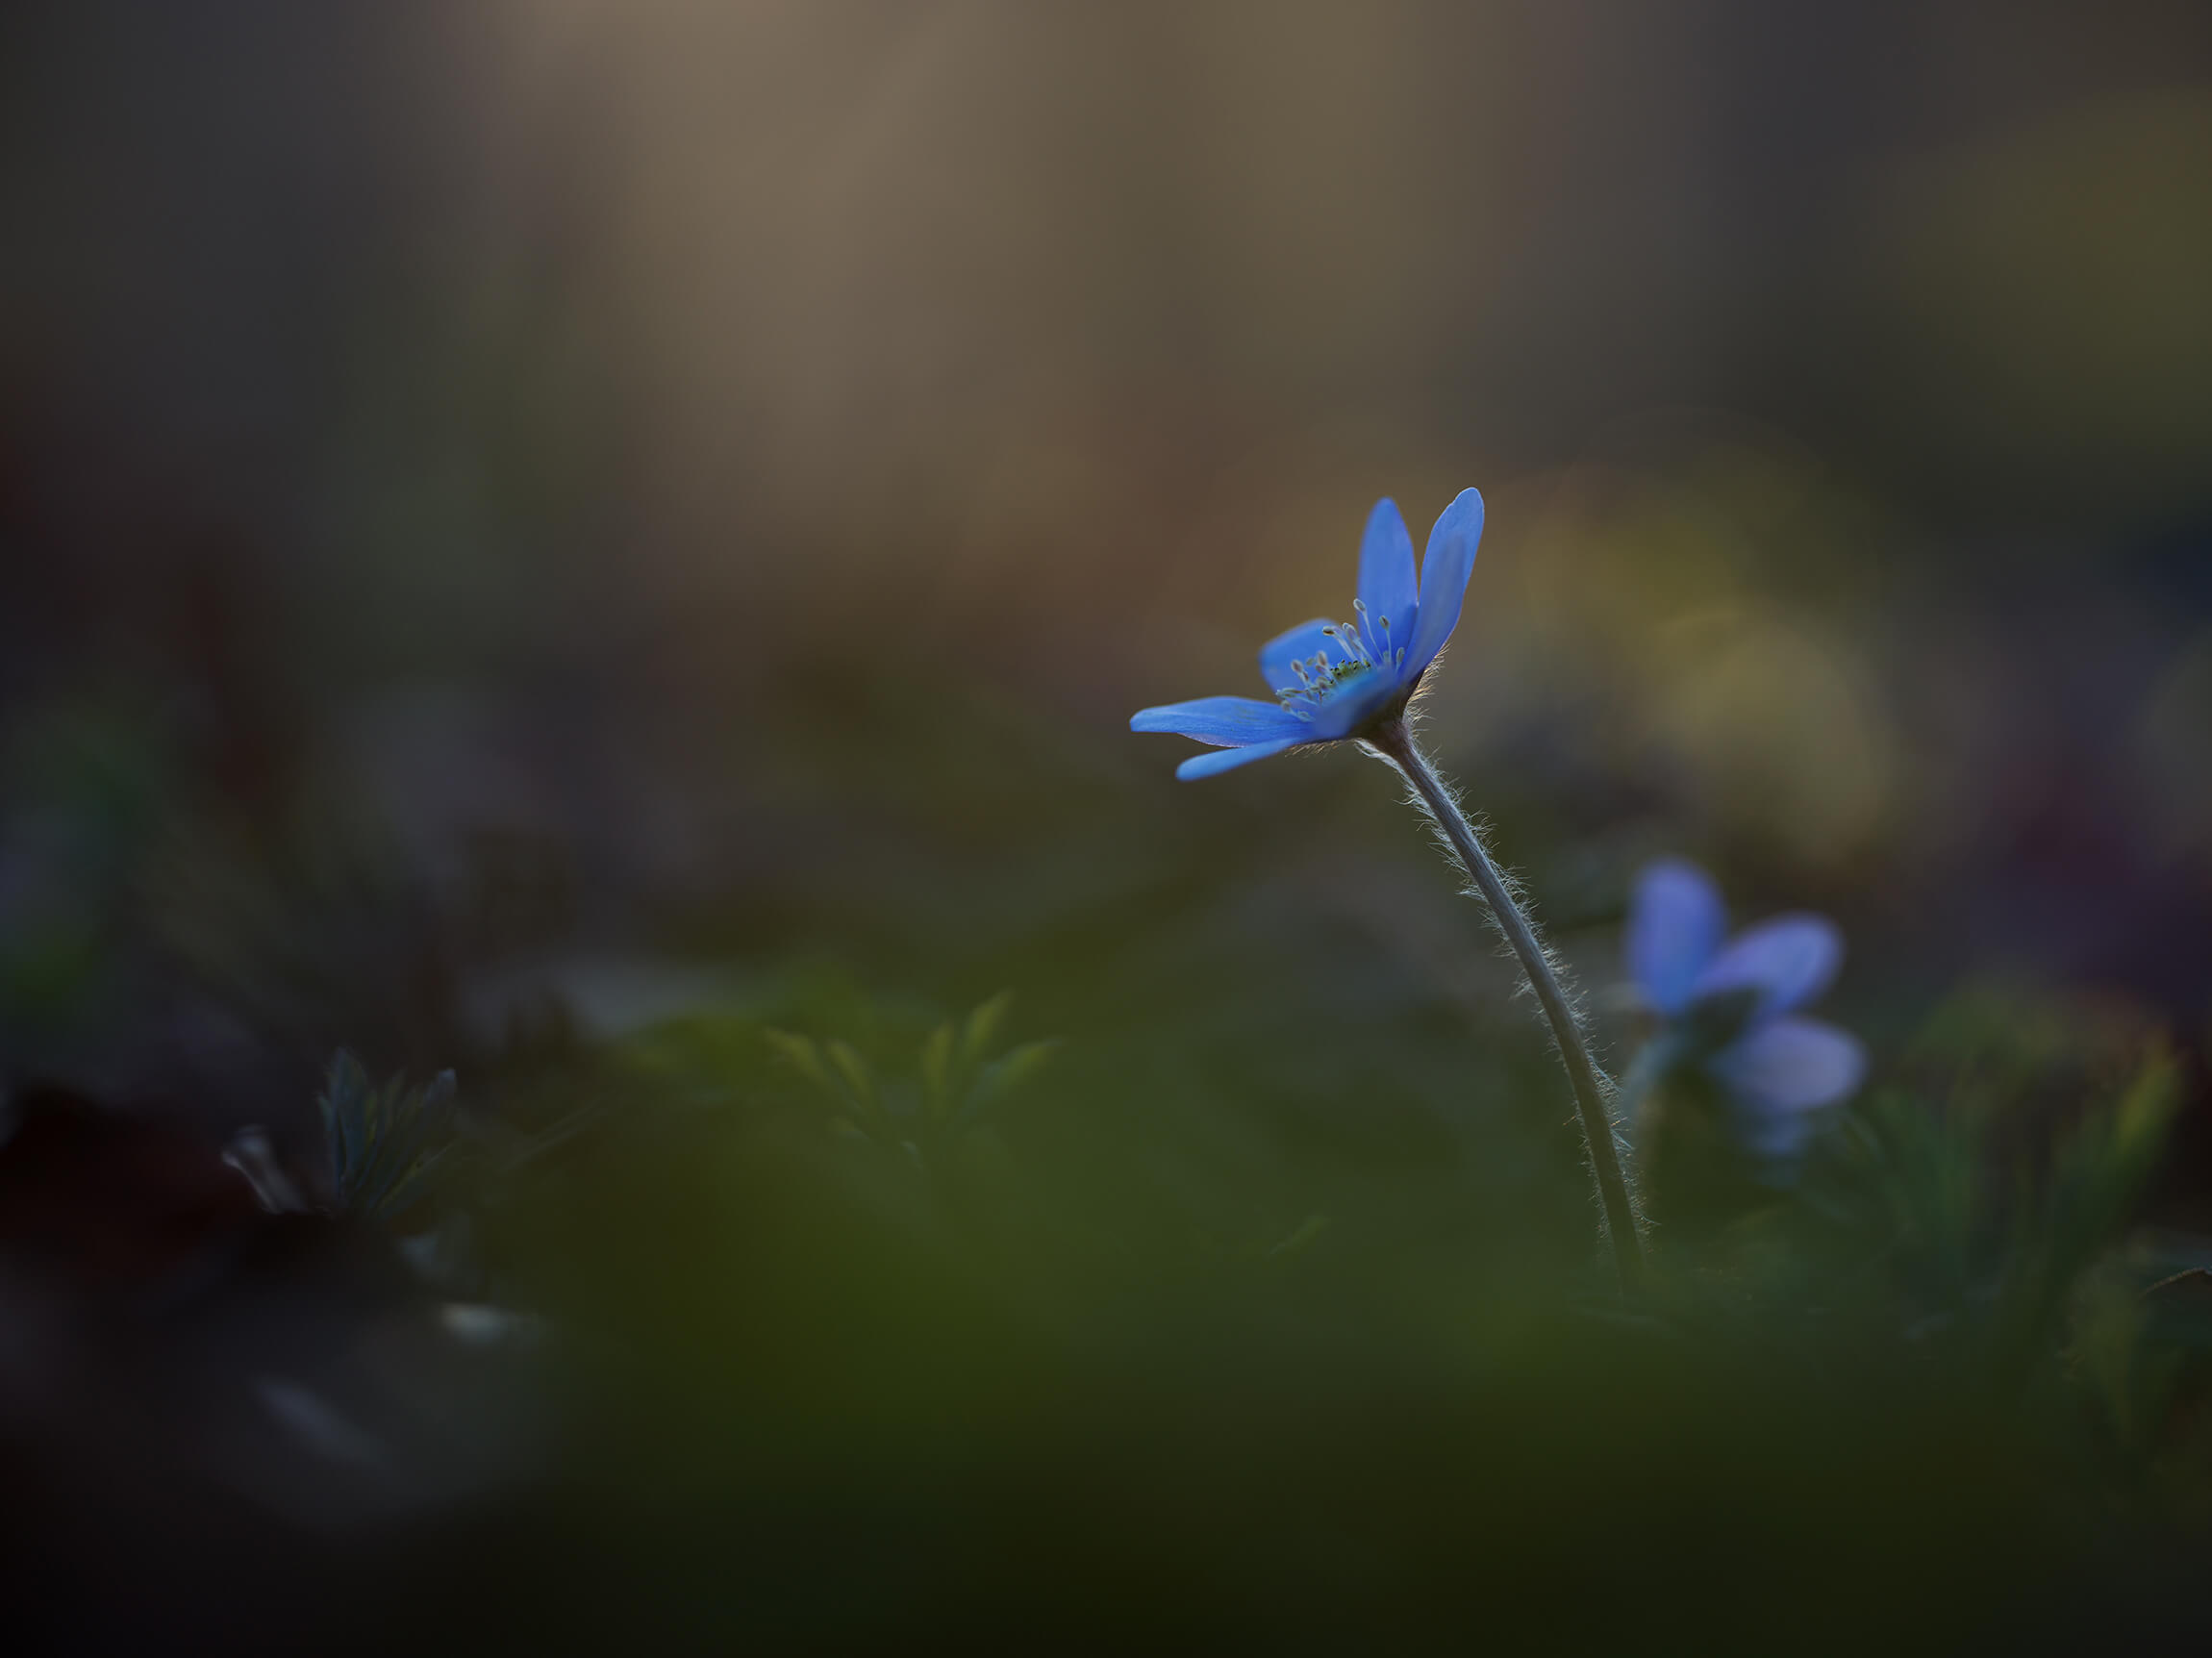 Linus Englund | Finding the Dramatic and the Delicate in Swedish Nature